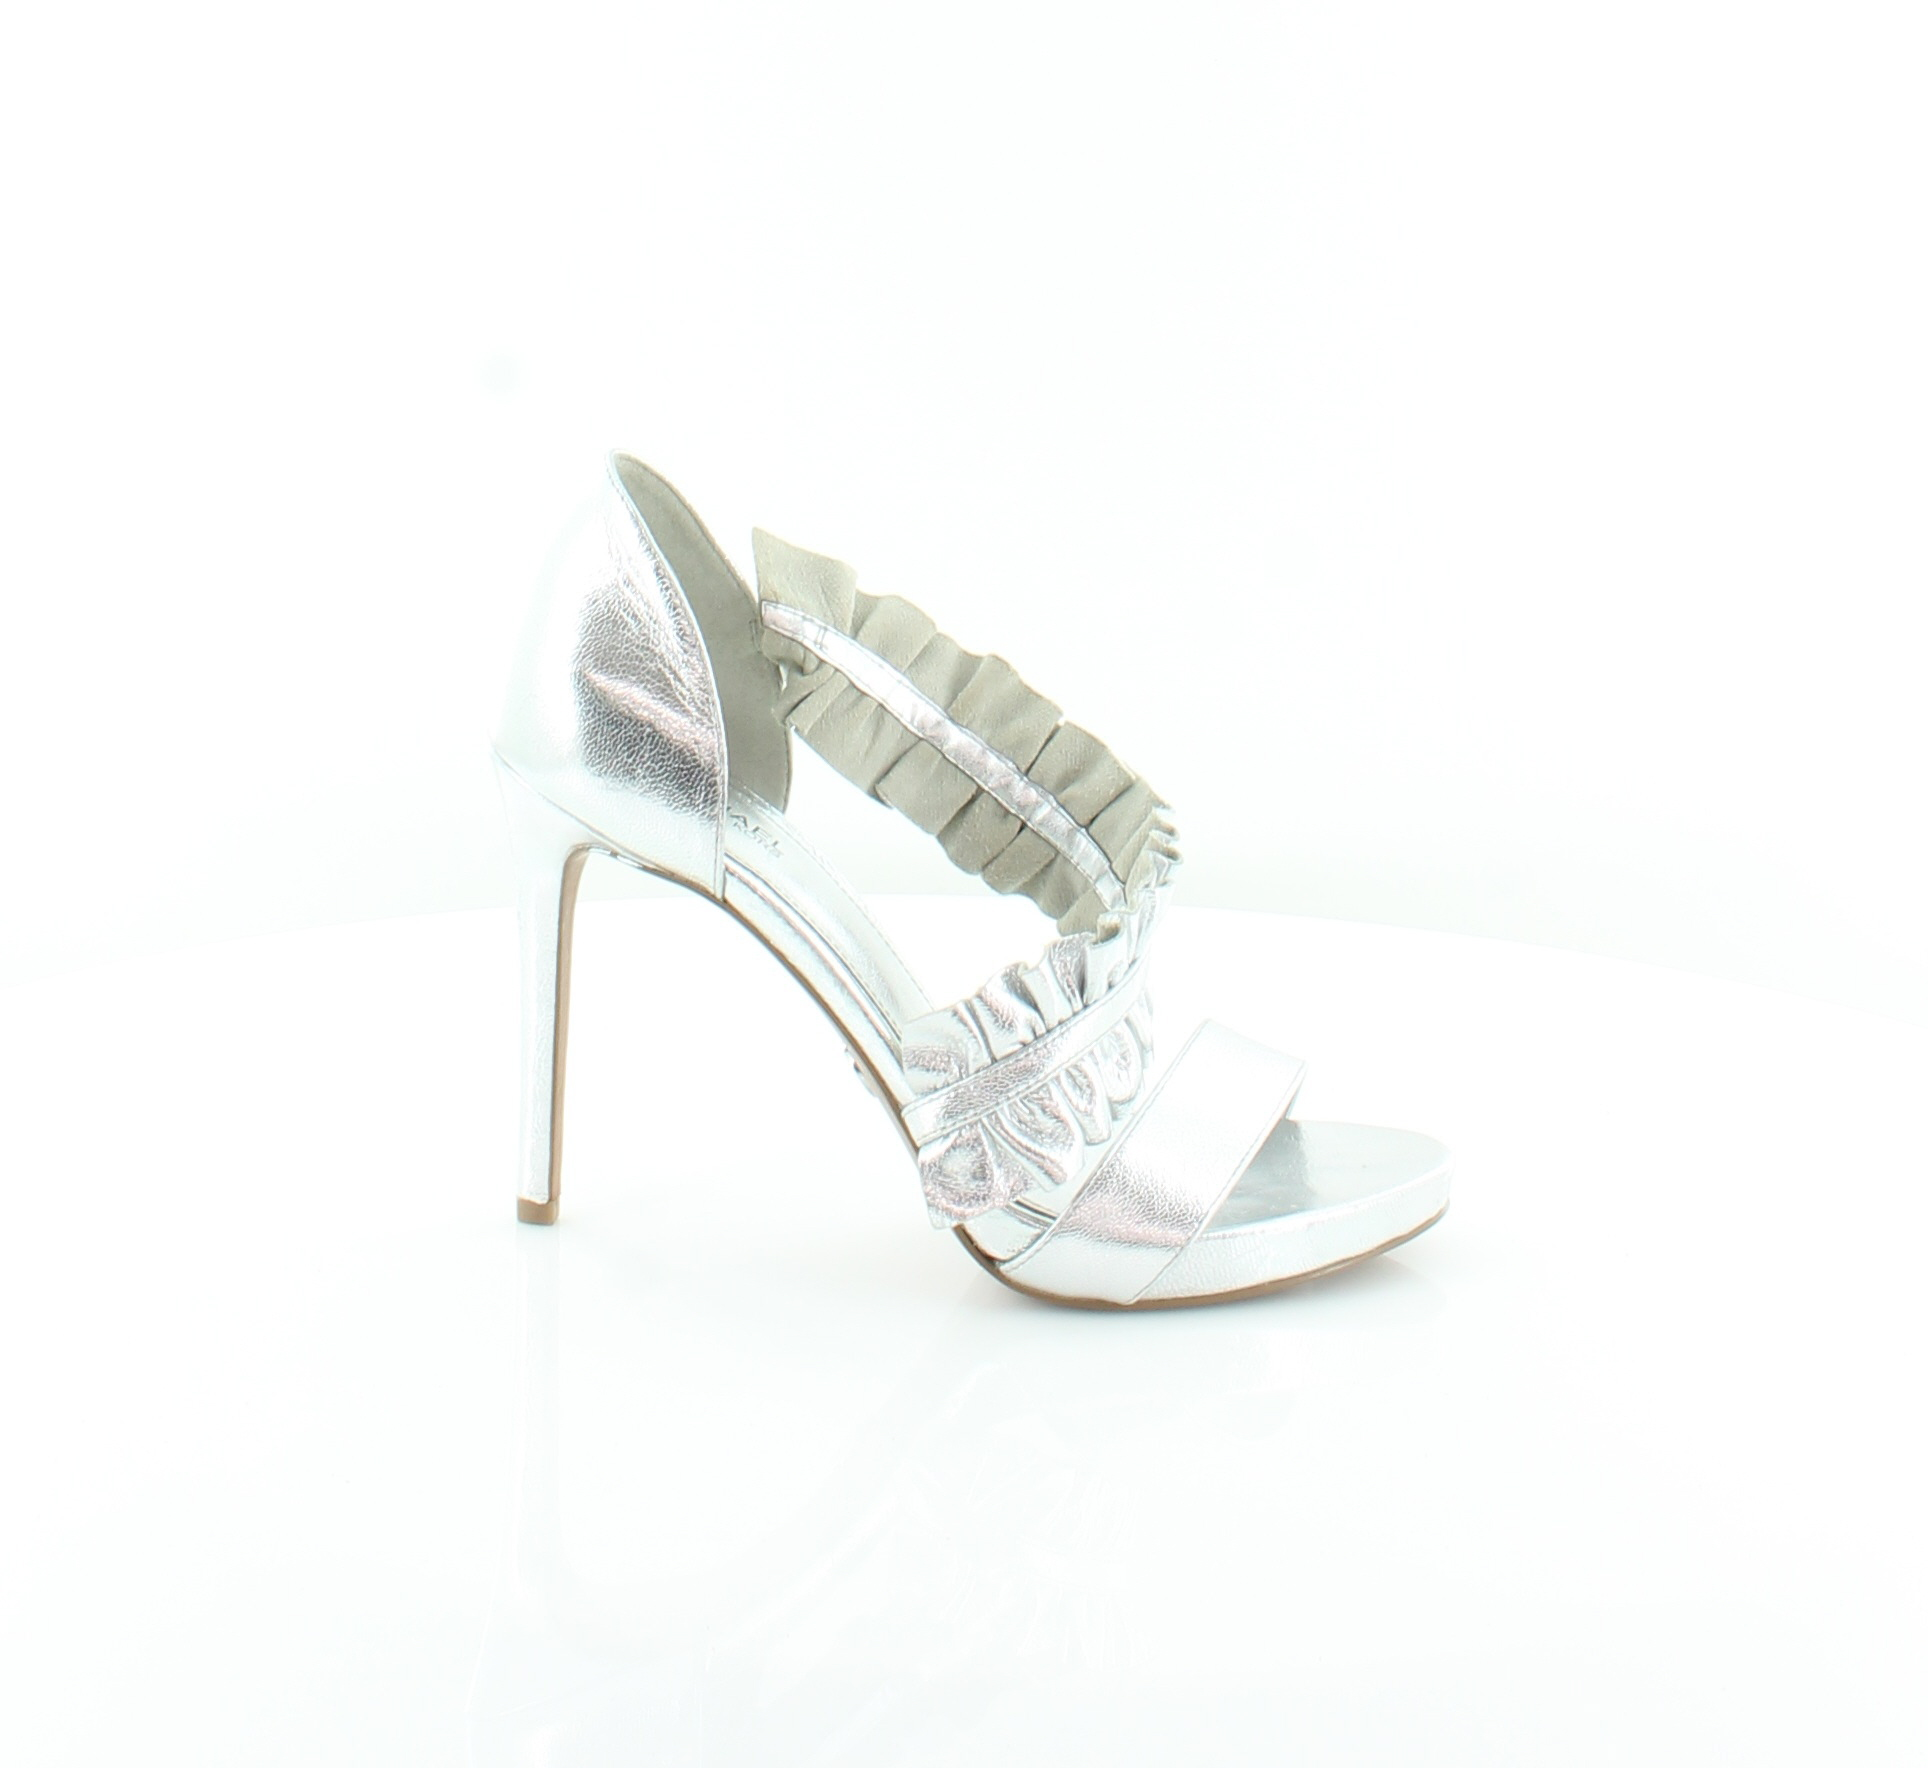 6492c97932e Michael Kors Bella Platform Silver Womens Shoes Size 8 M Heels MSRP ...